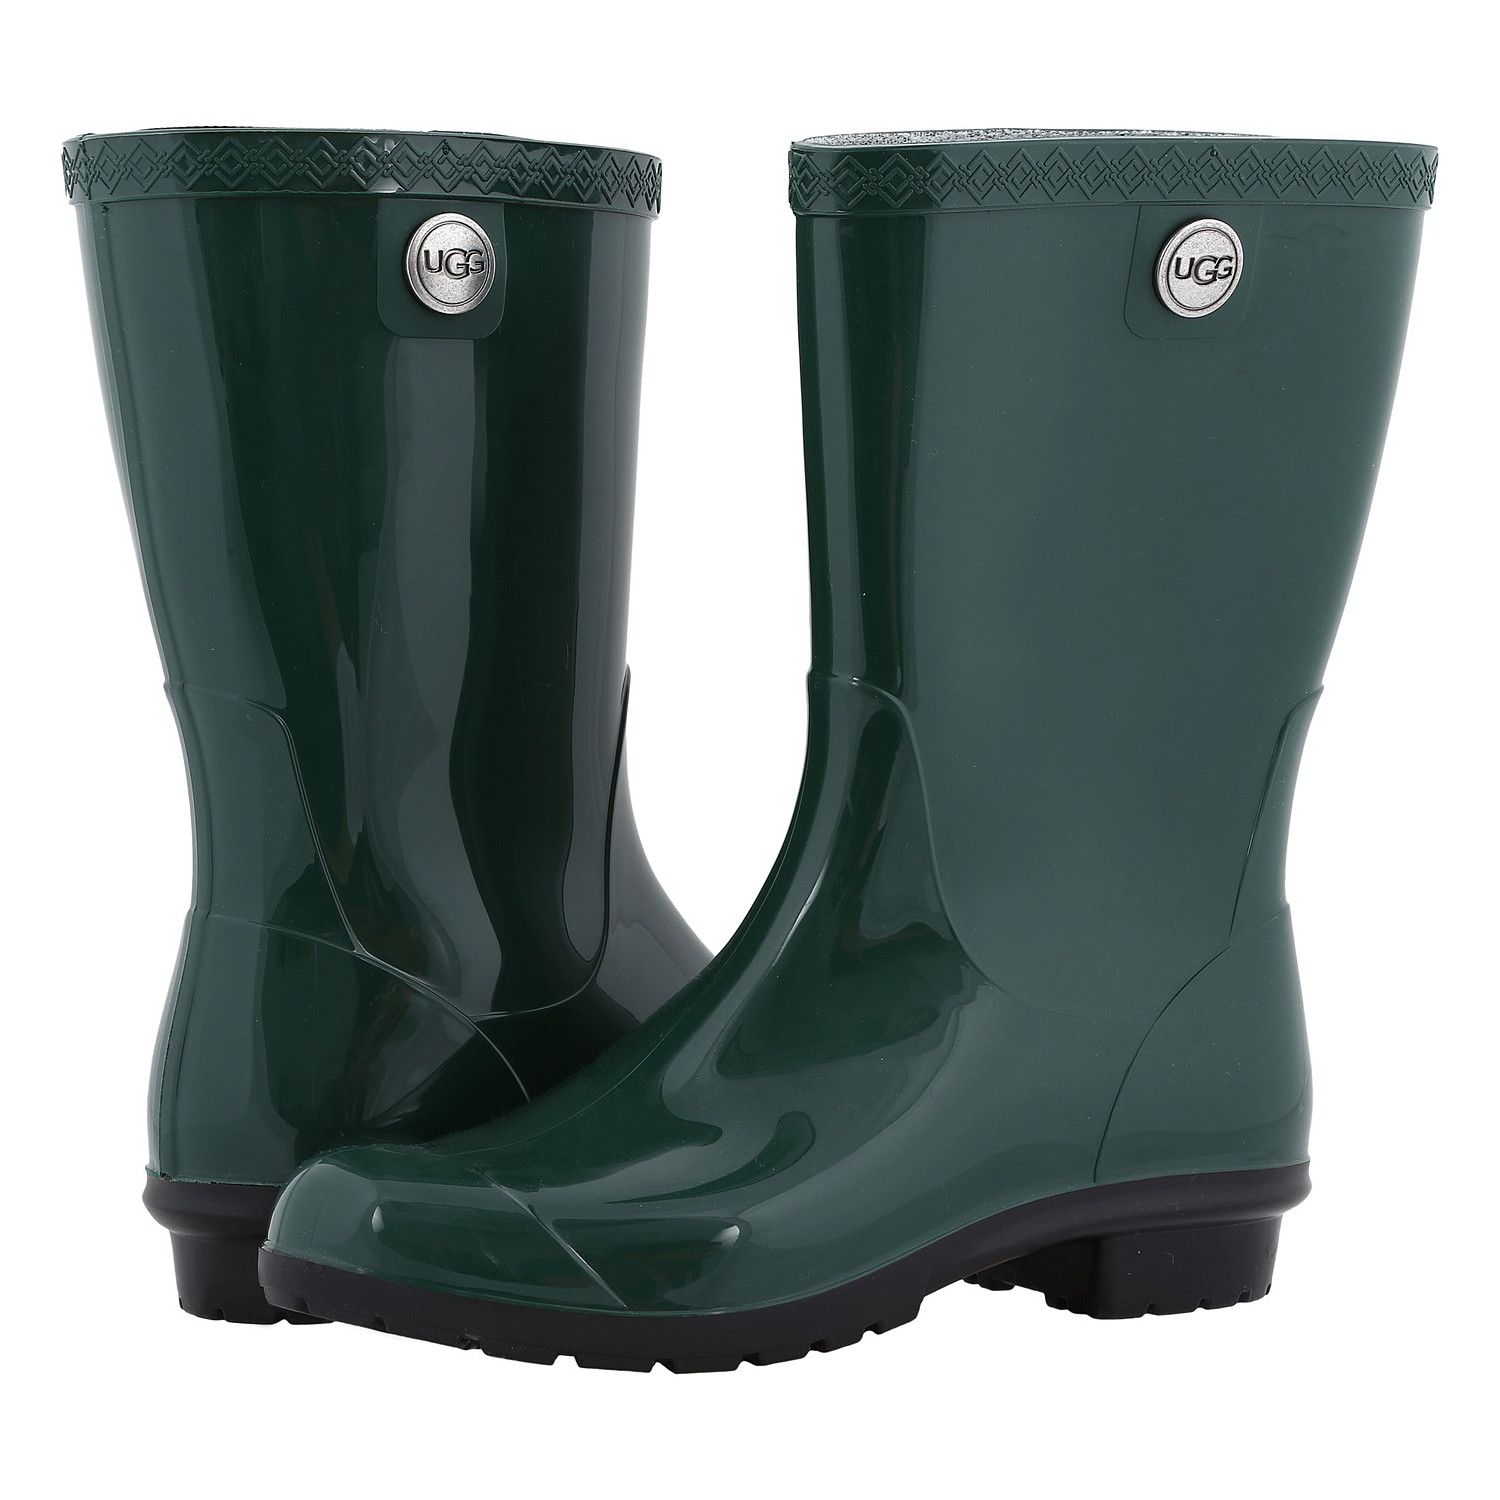 b6f586c6994 Details about UGG Women's Sienna Mid Calf Pull Up Rain Boot Pine